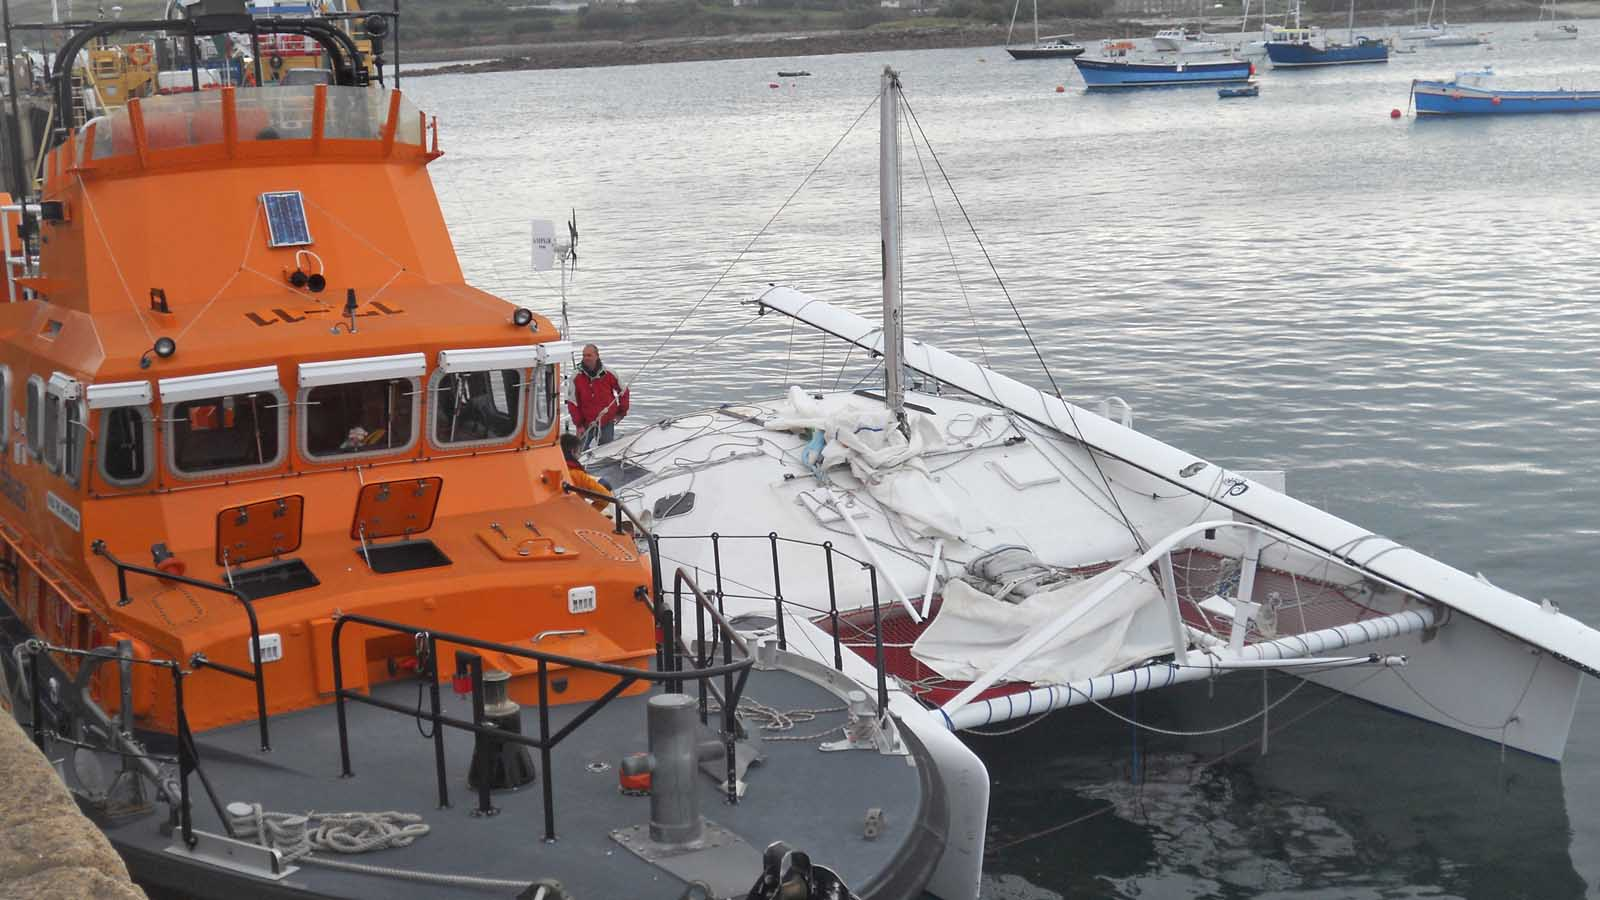 lifeboat rescue orinocco flow june 2012